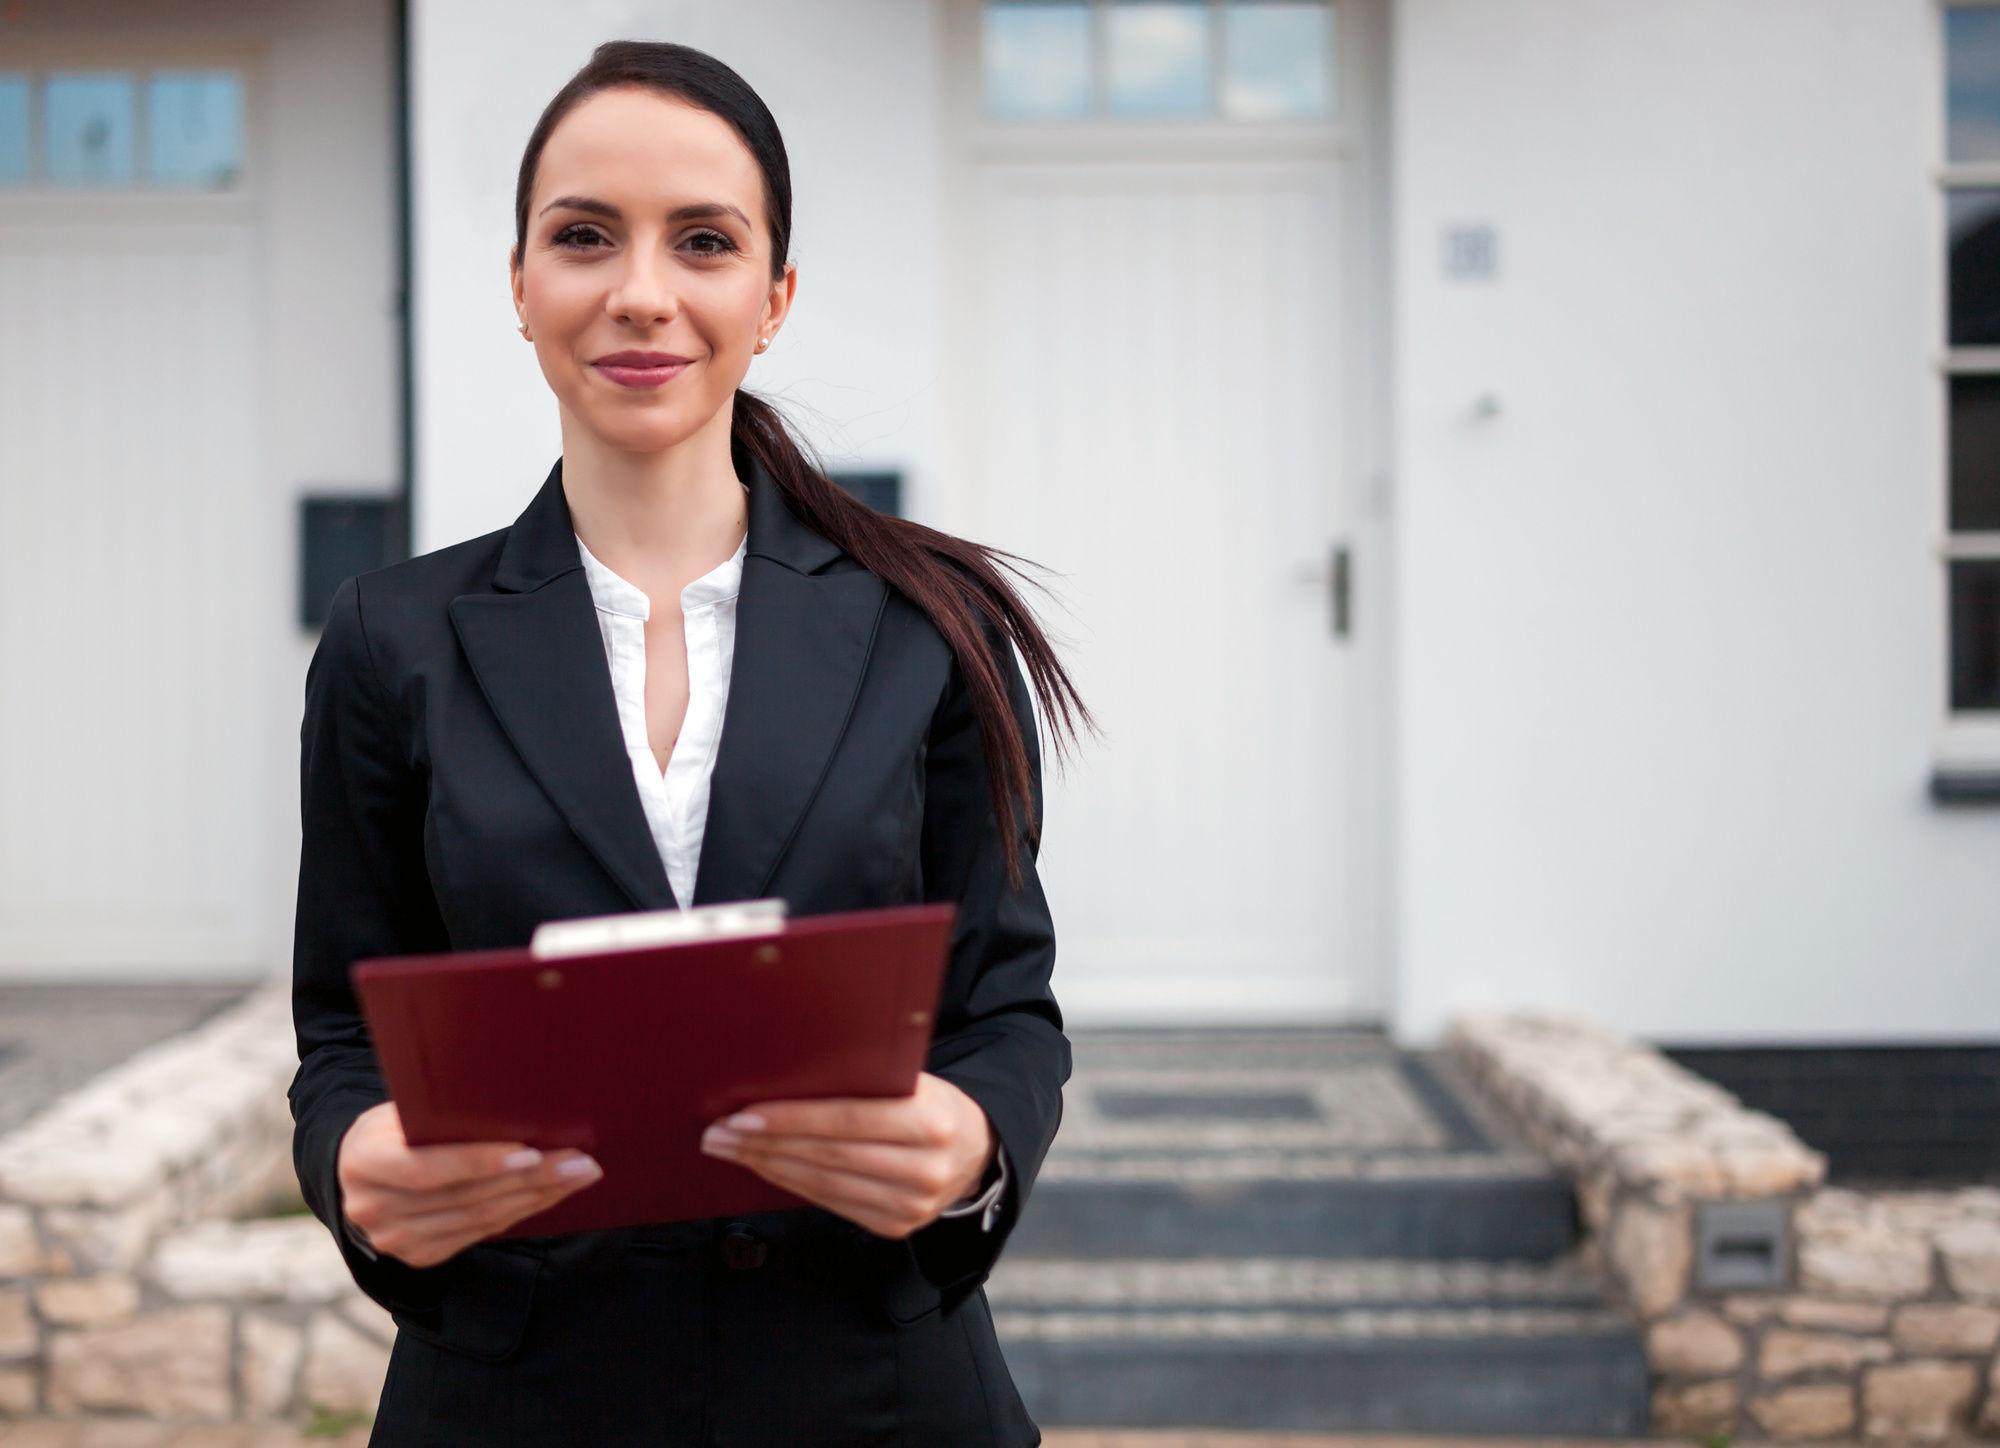 How to hire a qualified real estate agent in your city?